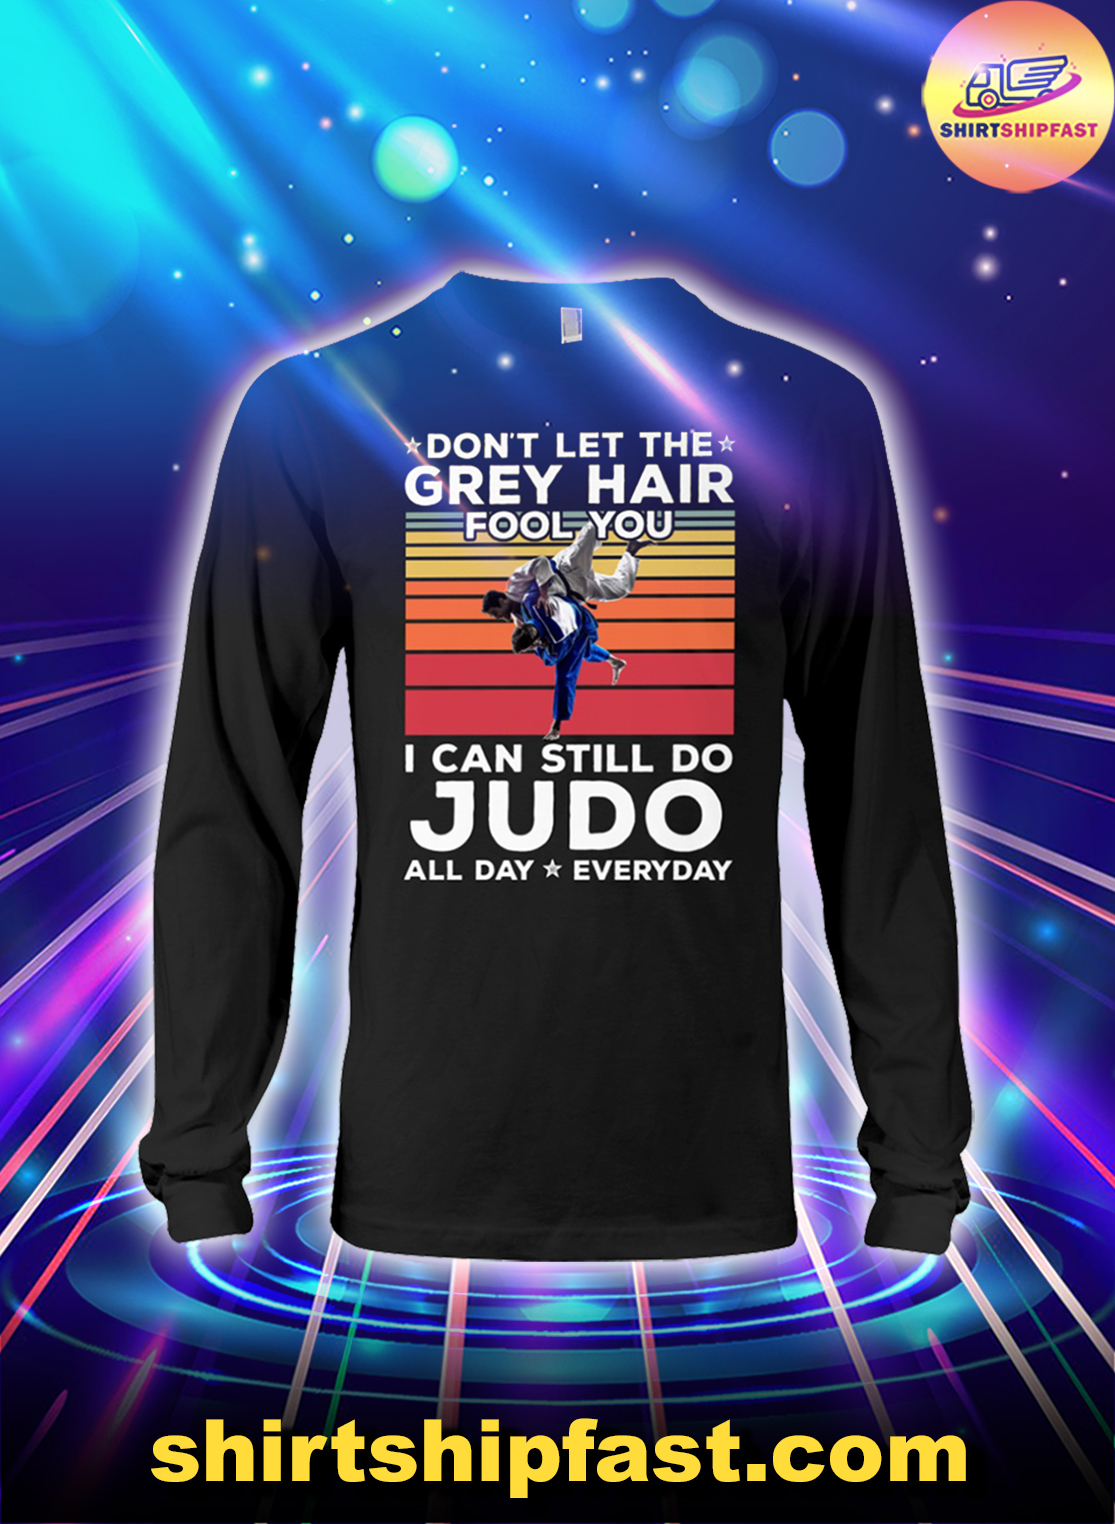 Don't let the grey hair fool you I can still do Judo all day everyday shirt and v-neck